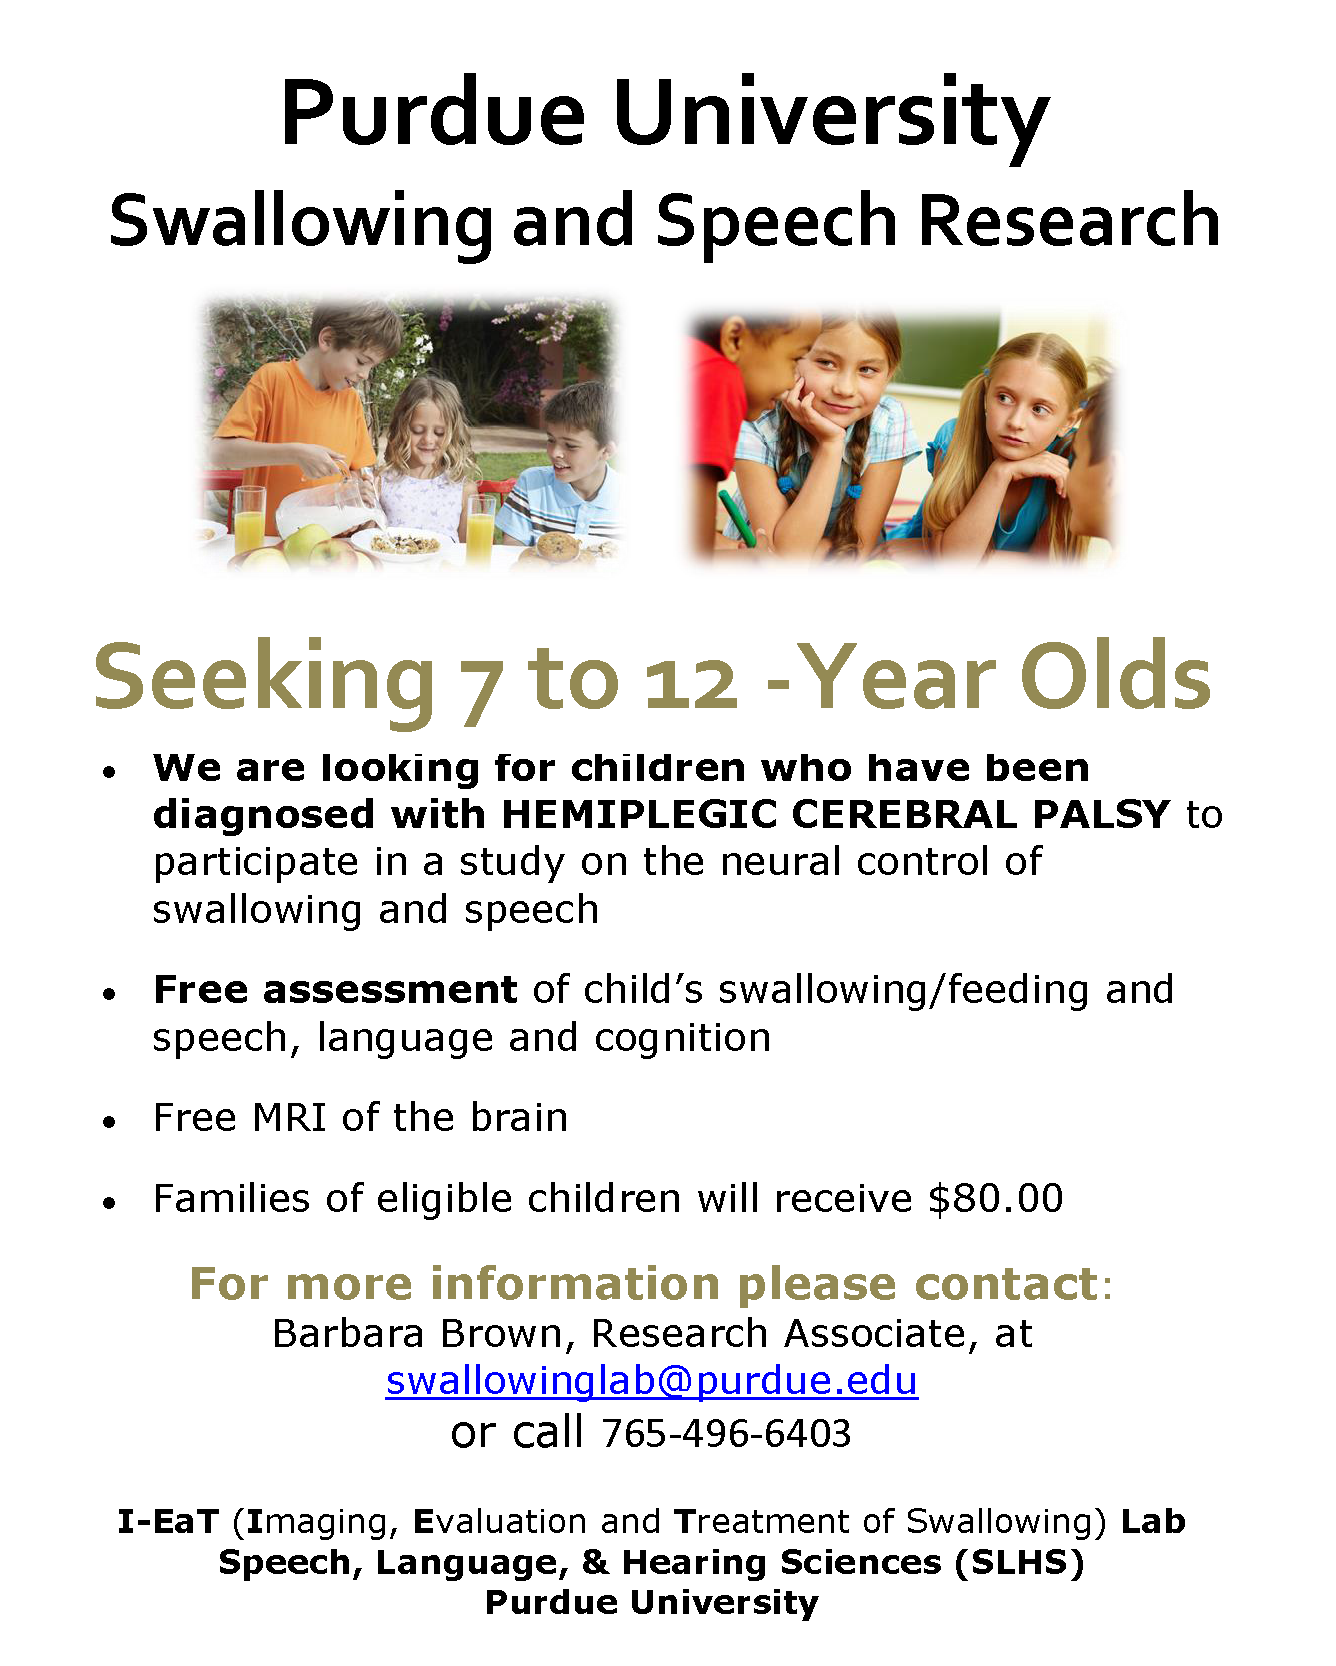 Research Seeking Participants – Children with Hemiplegia